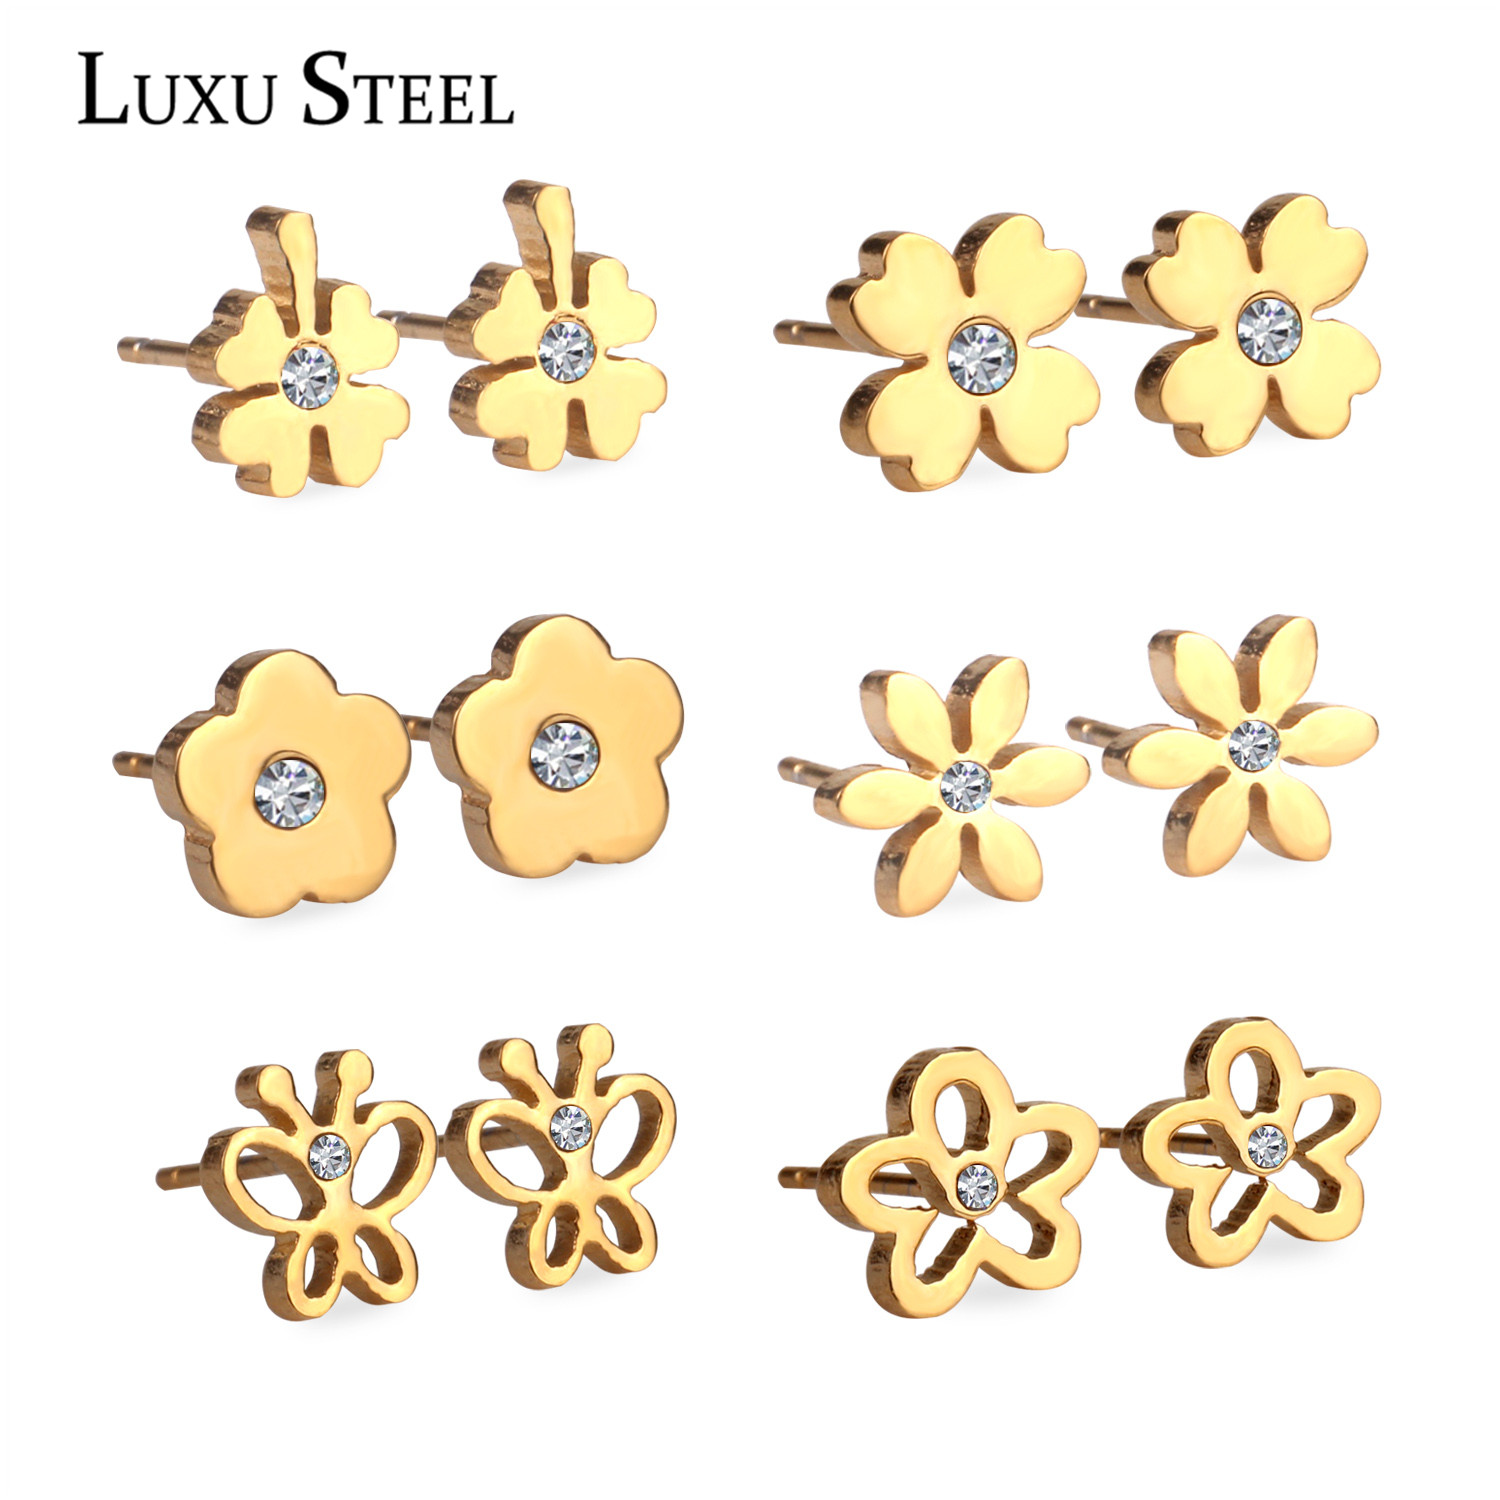 LUXUSTEEL Earrings For Women Stainless Steel Cubic Zirconia Earrings Sets Fashion Stud Earring Jewelry Hot Sale PendientesLUXUSTEEL Earrings For Women Stainless Steel Cubic Zirconia Earrings Sets Fashion Stud Earring Jewelry Hot Sale Pendientes